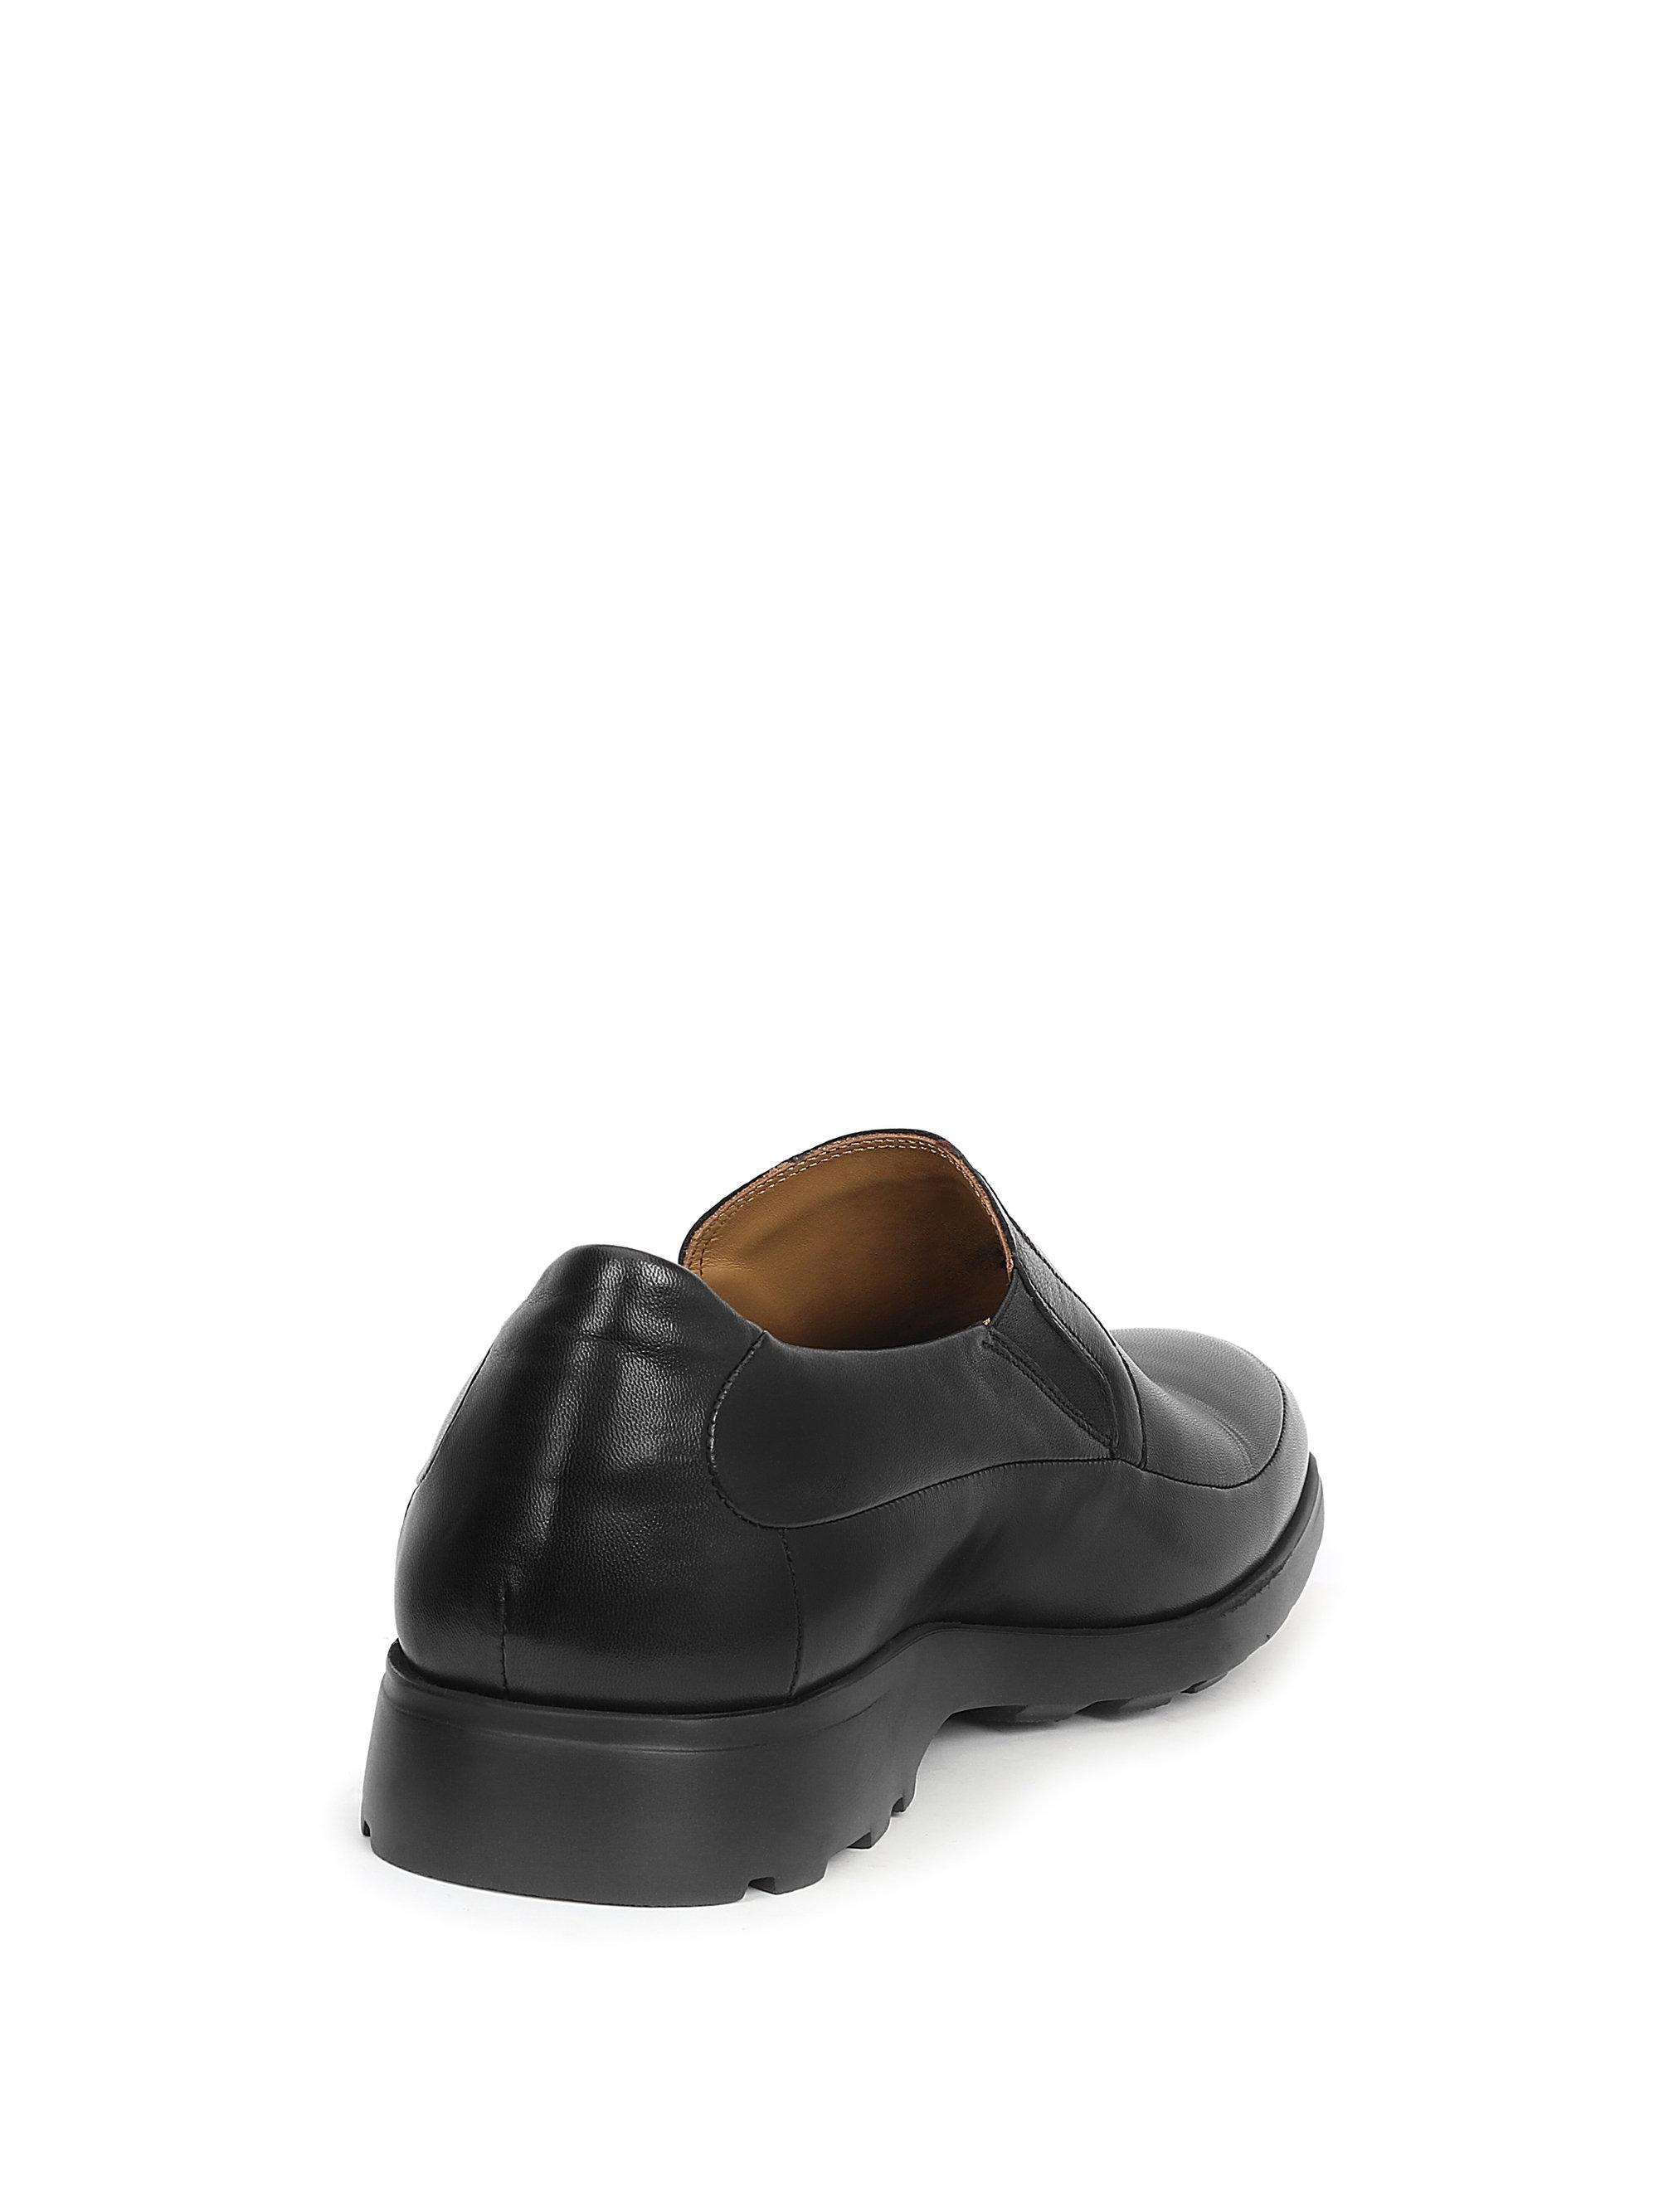 Bruno MagliVegas Leather Moccasins